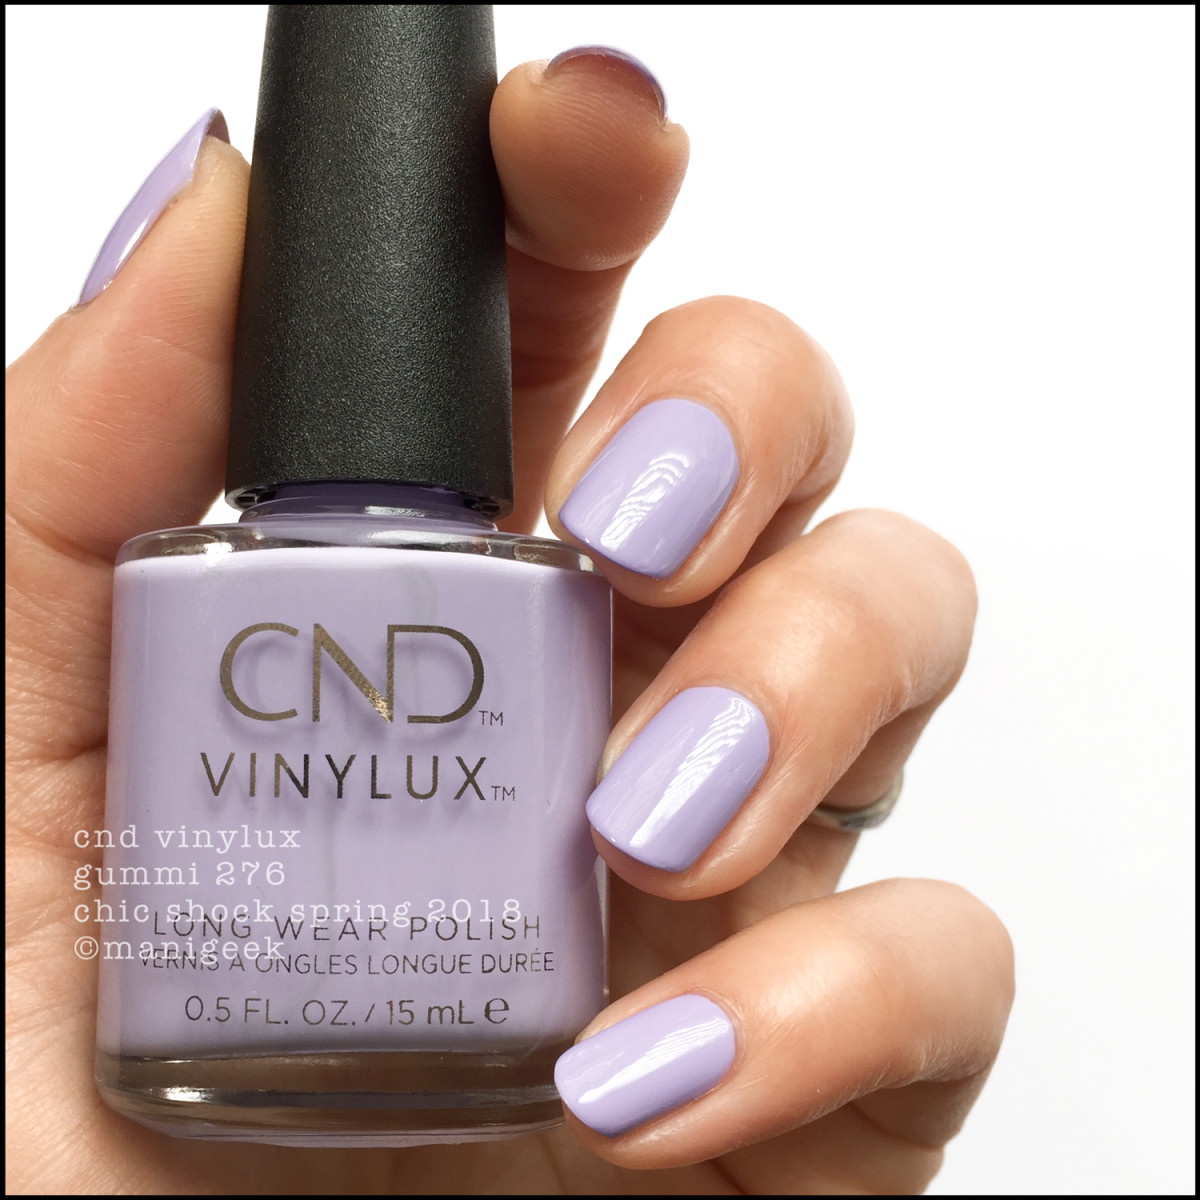 CND Vinylux Gummi 276 - Chic Shock Collection Spring 2018